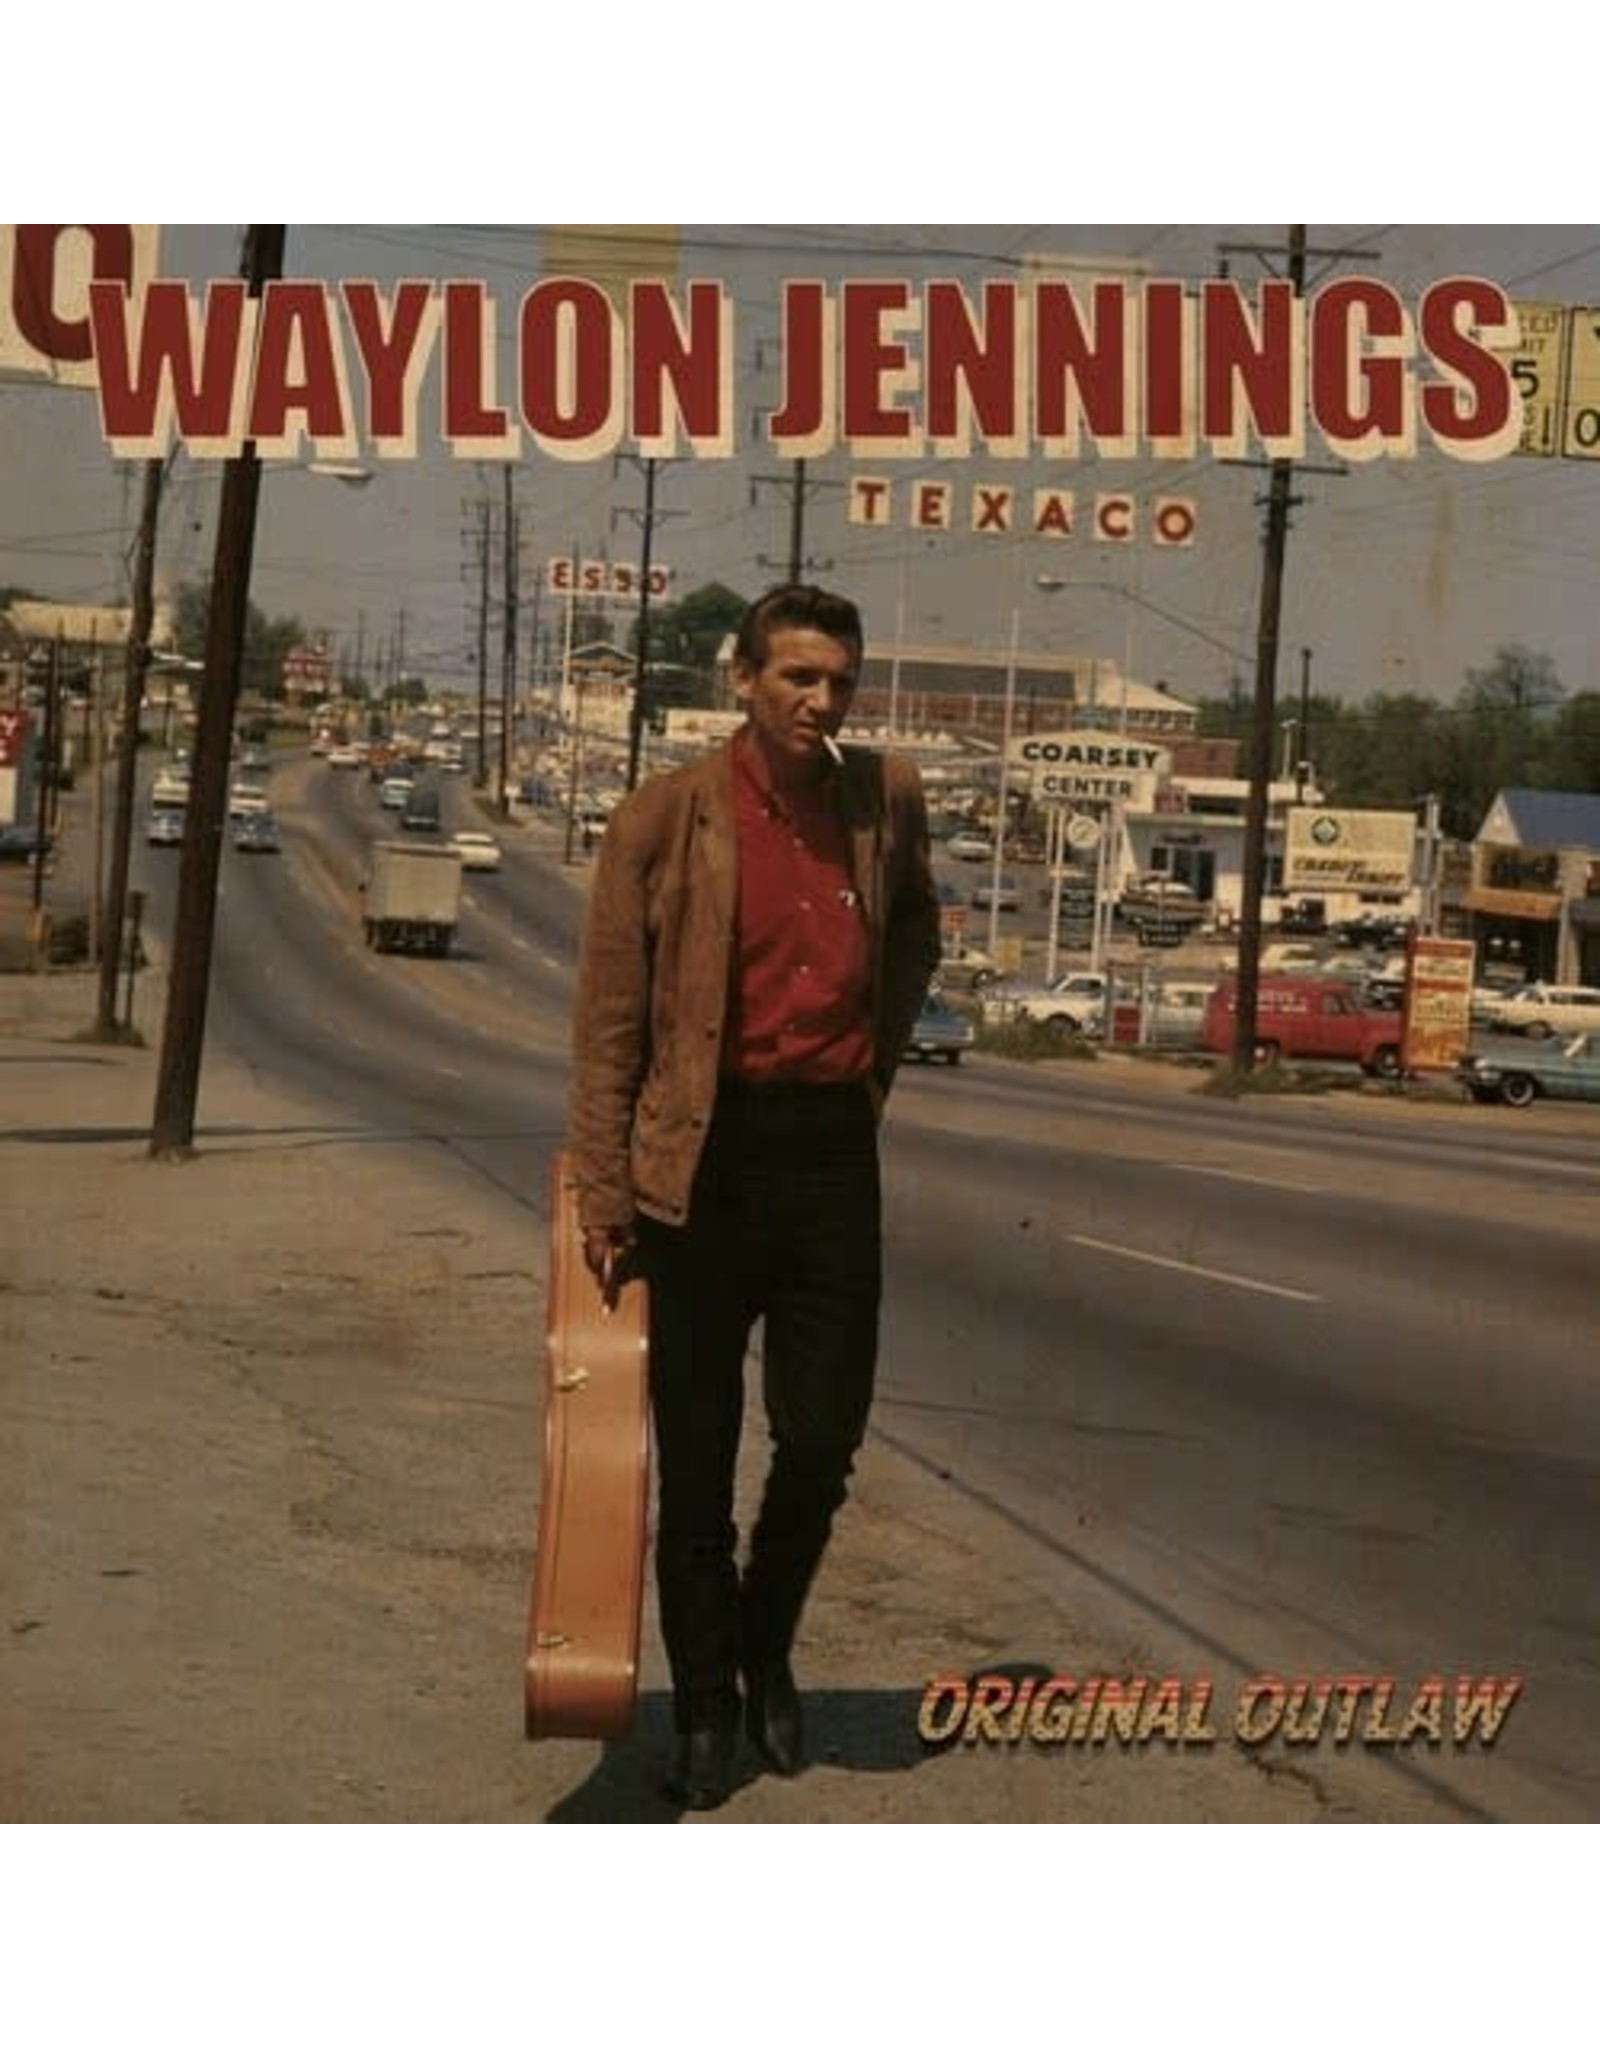 New Vinyl Waylon Jennings - Original Outlaw (Tri-Colored) LP